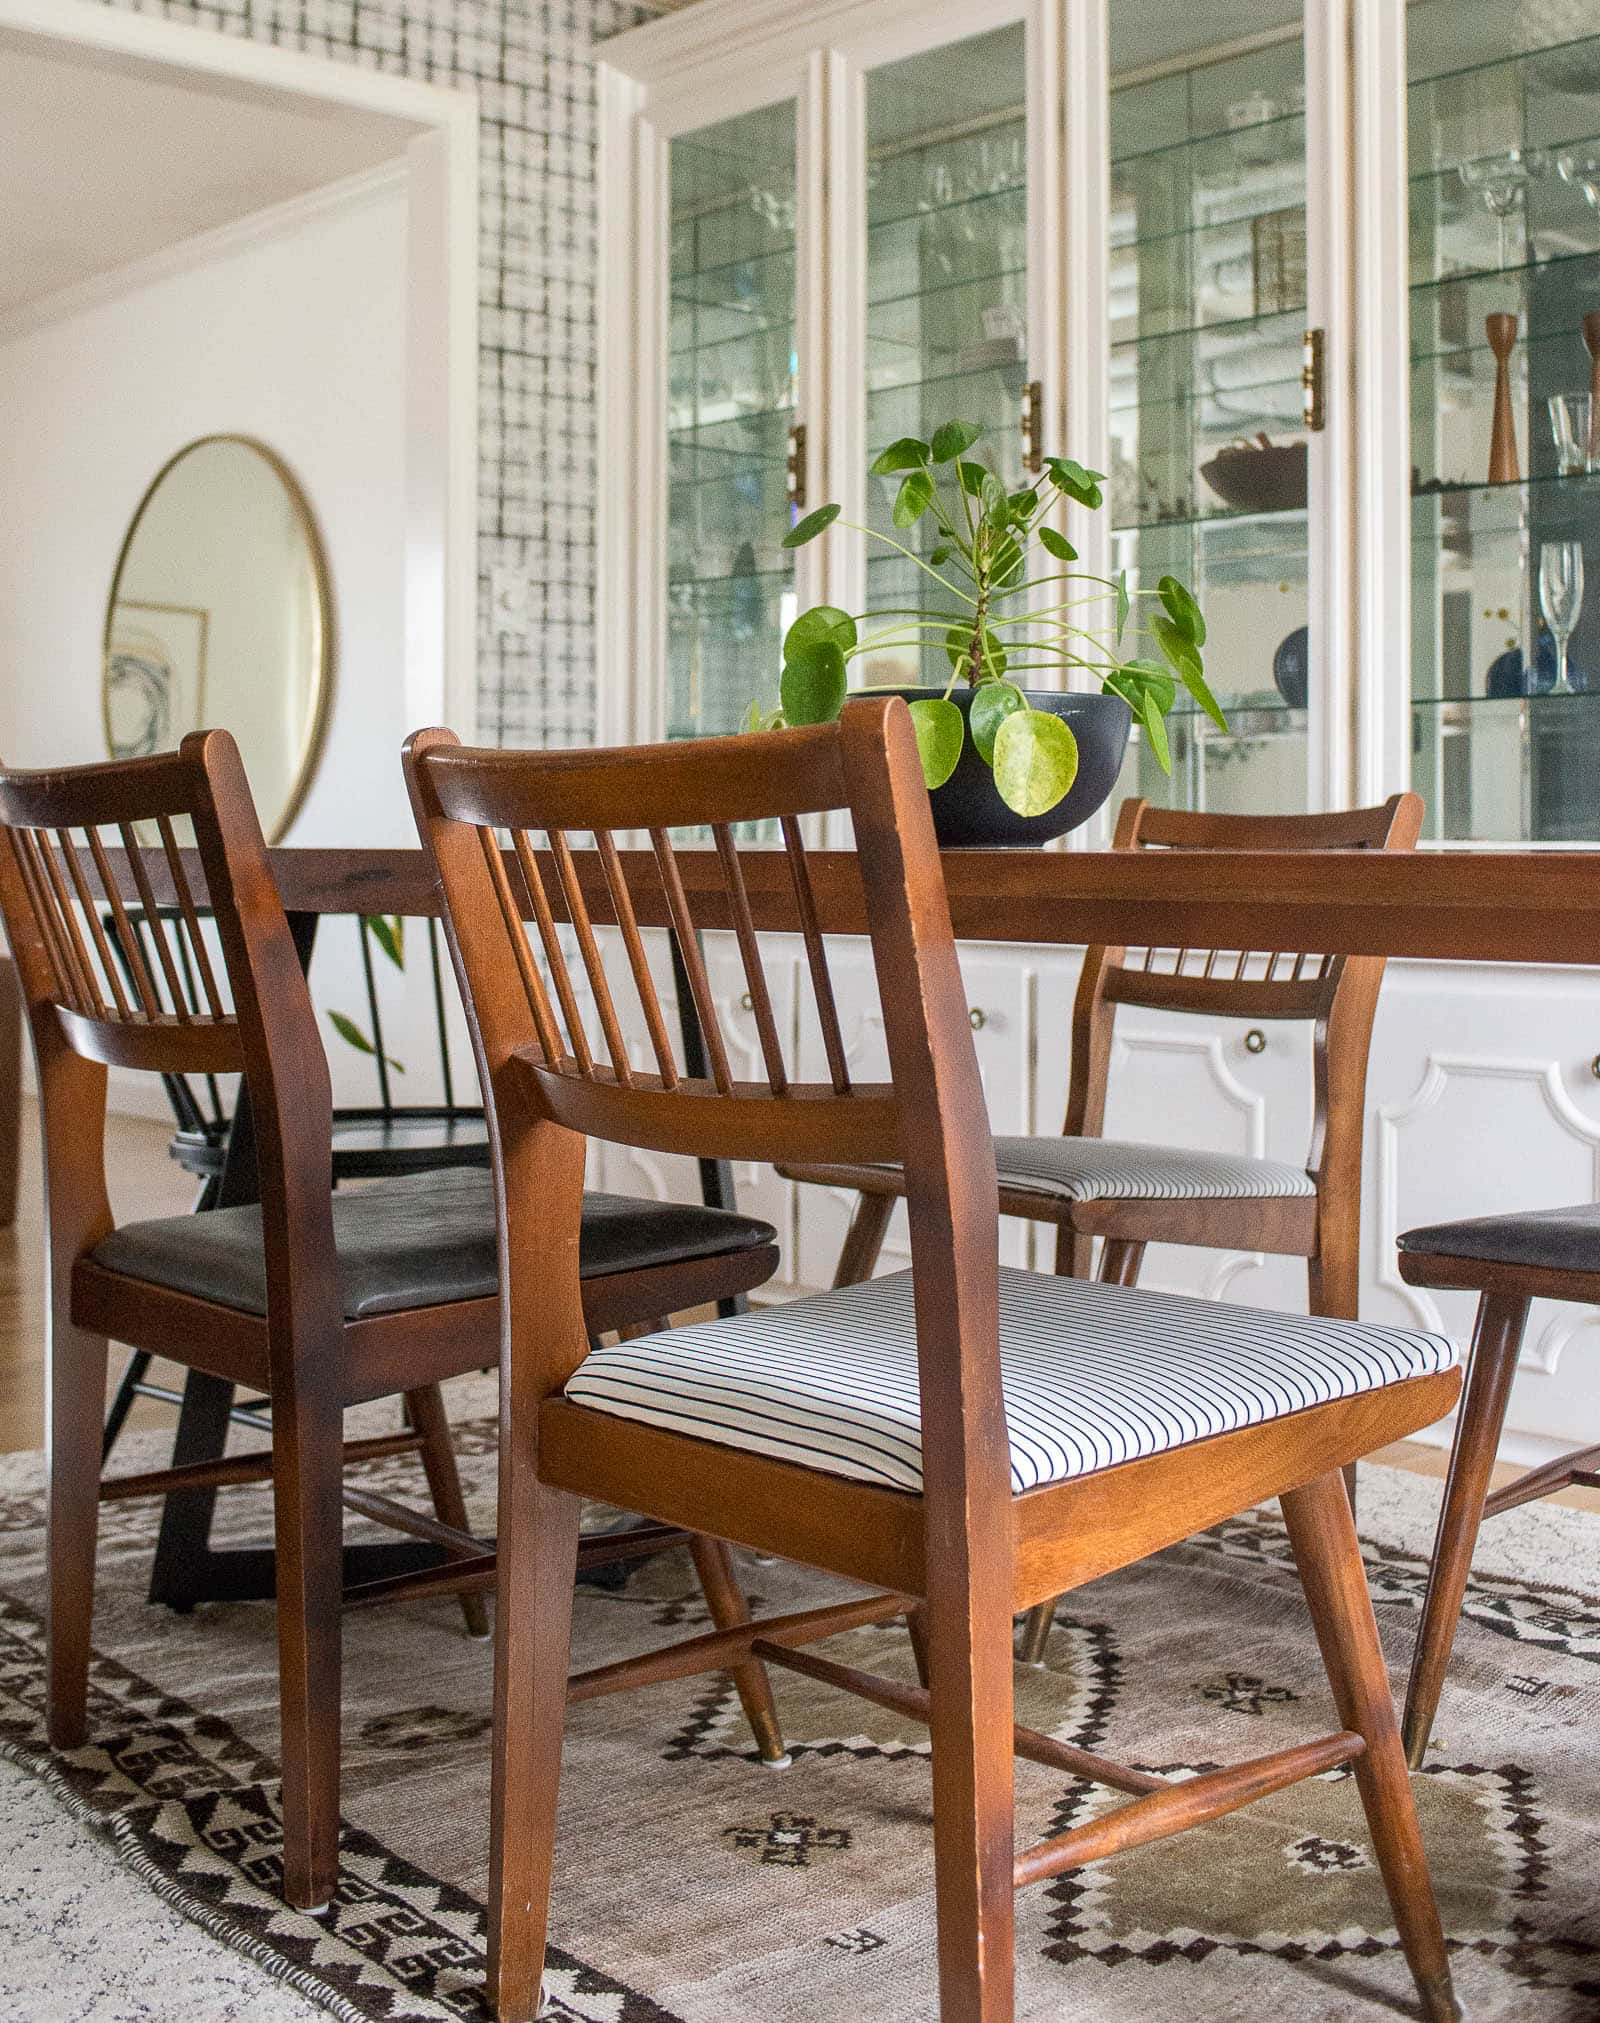 Midcentury dining room chairs around table